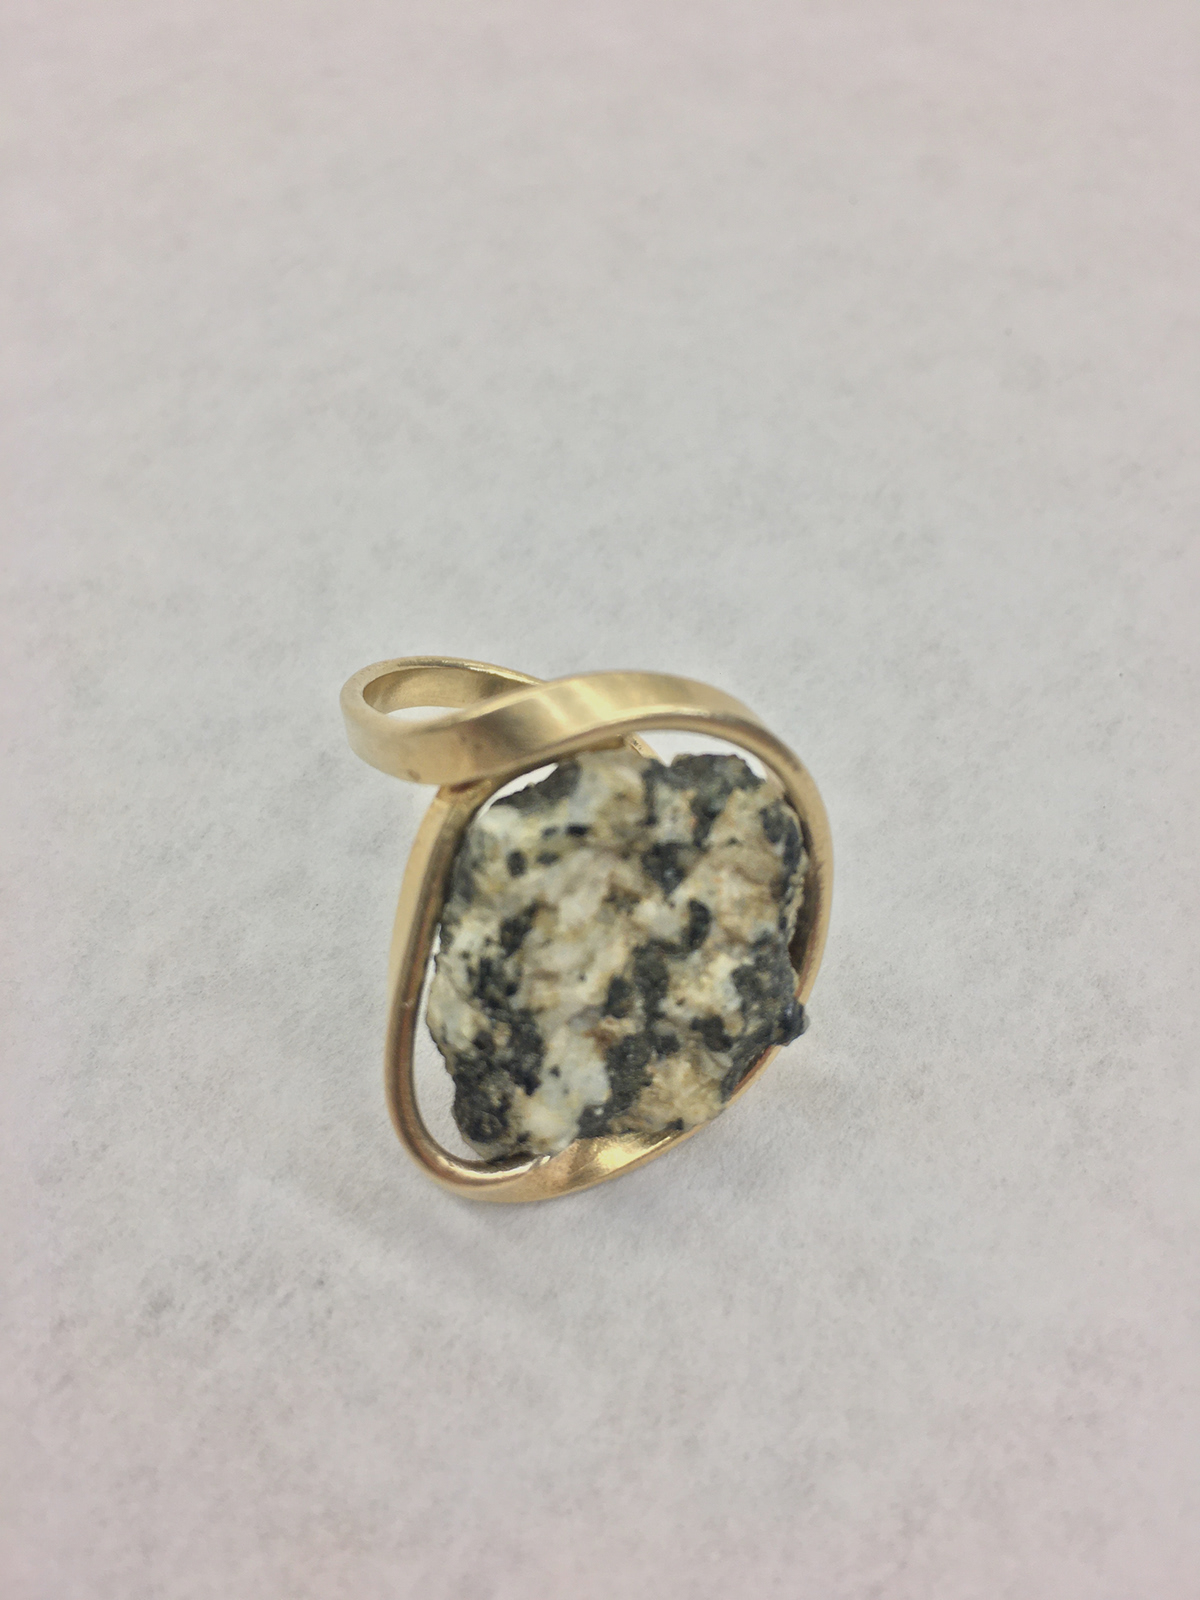 brass fluid forged metal jewelry natural stones rings river stones  stones